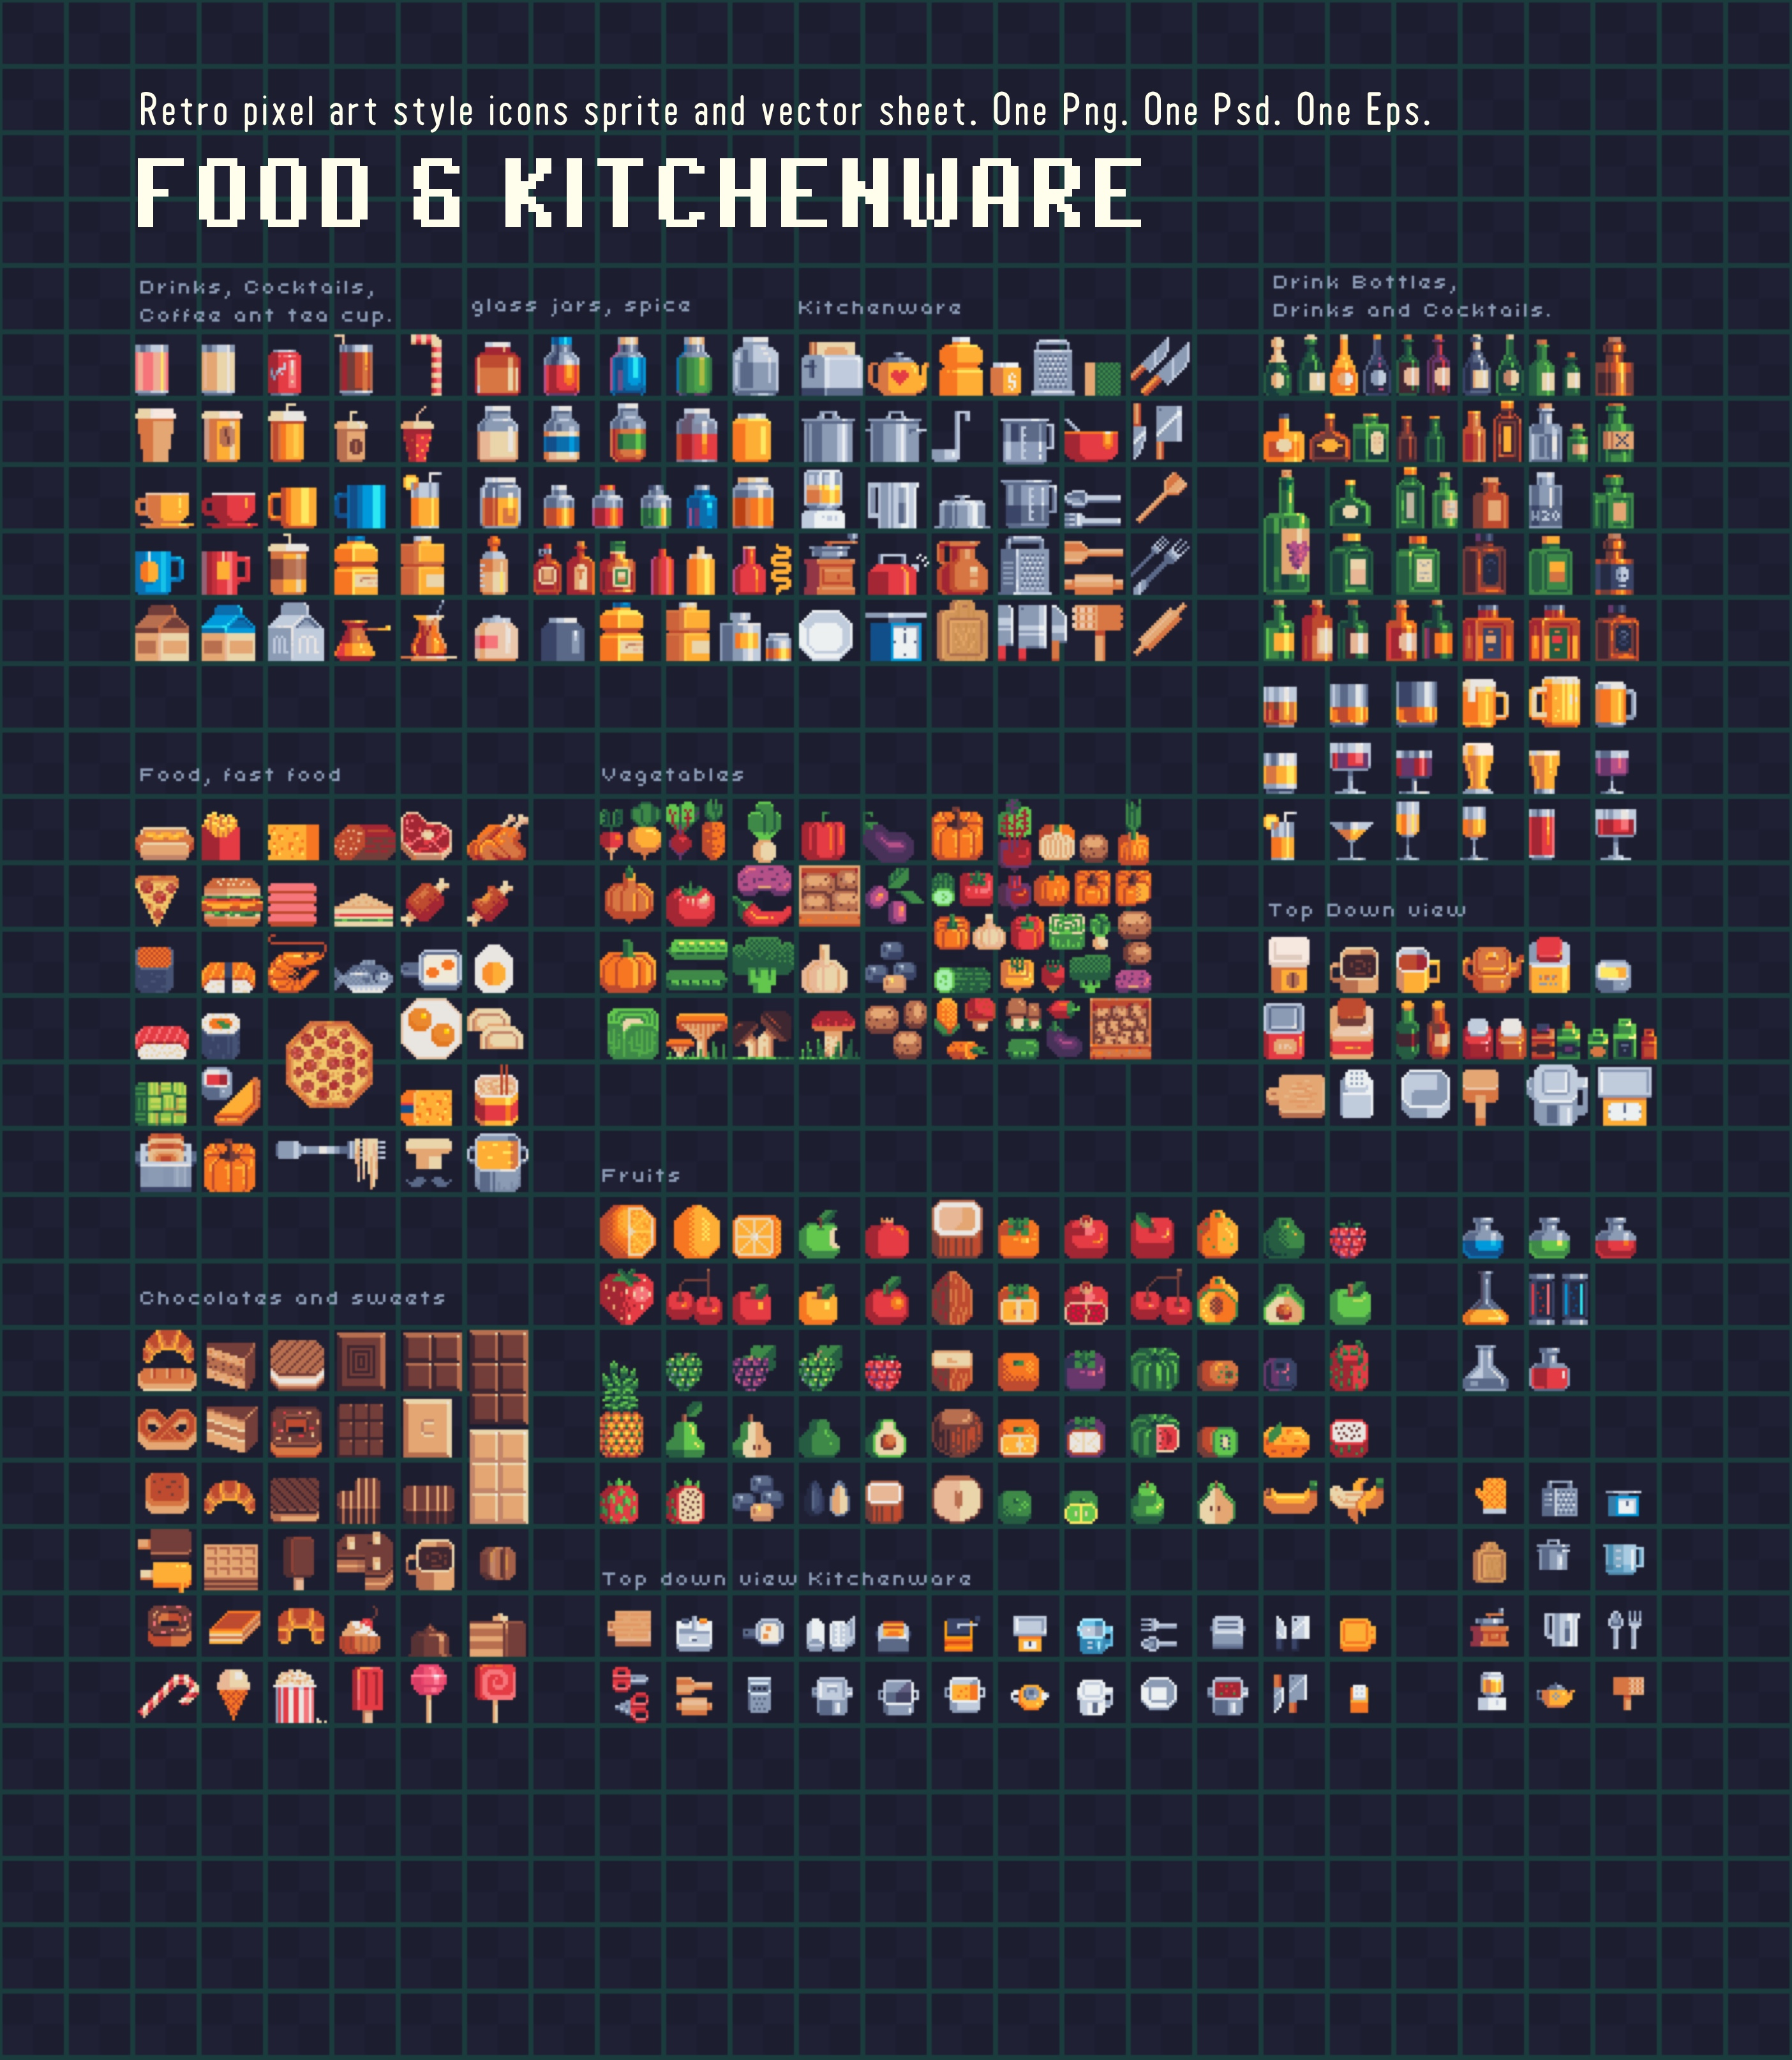 Food and little bit of kitchenware by VectorPixelStar